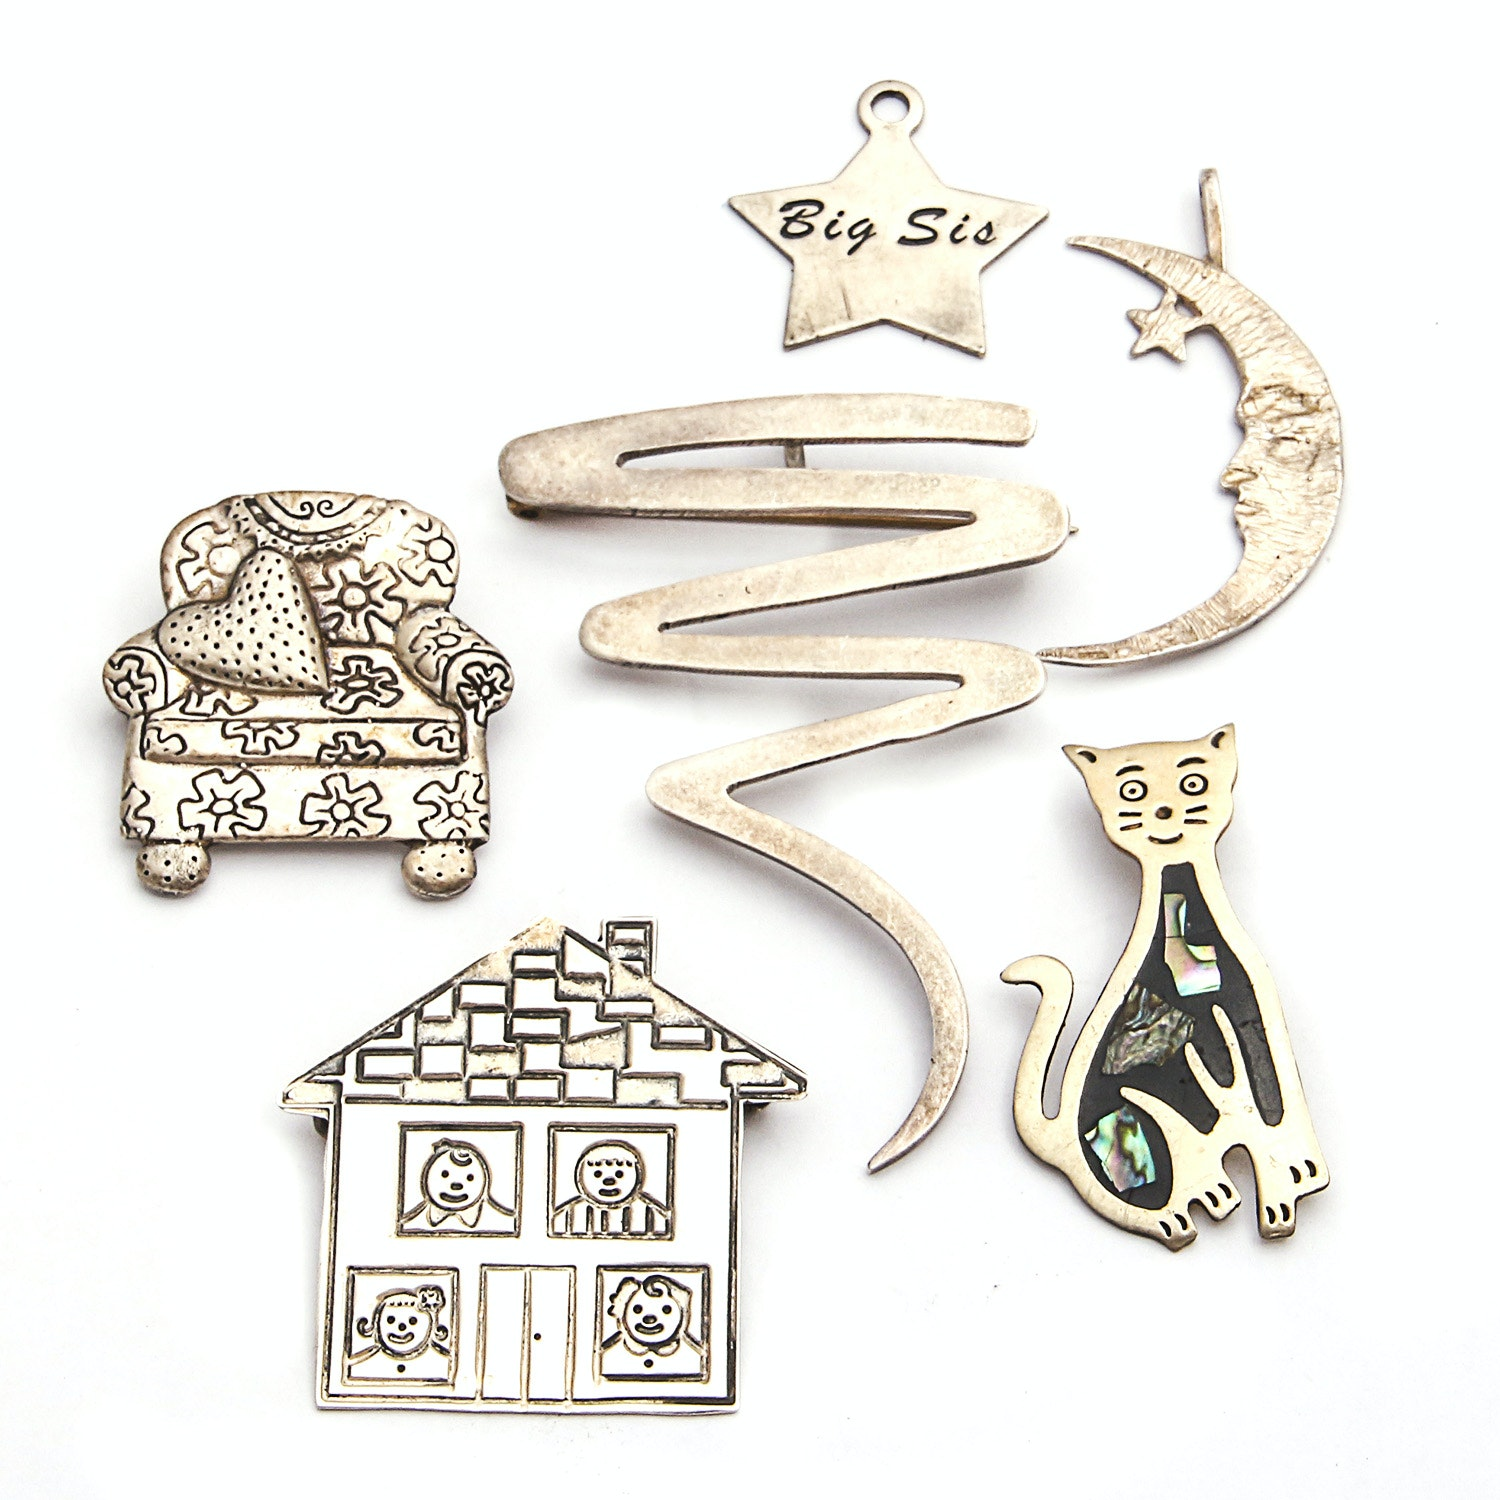 Whimsical Sterling Charms and Brooches